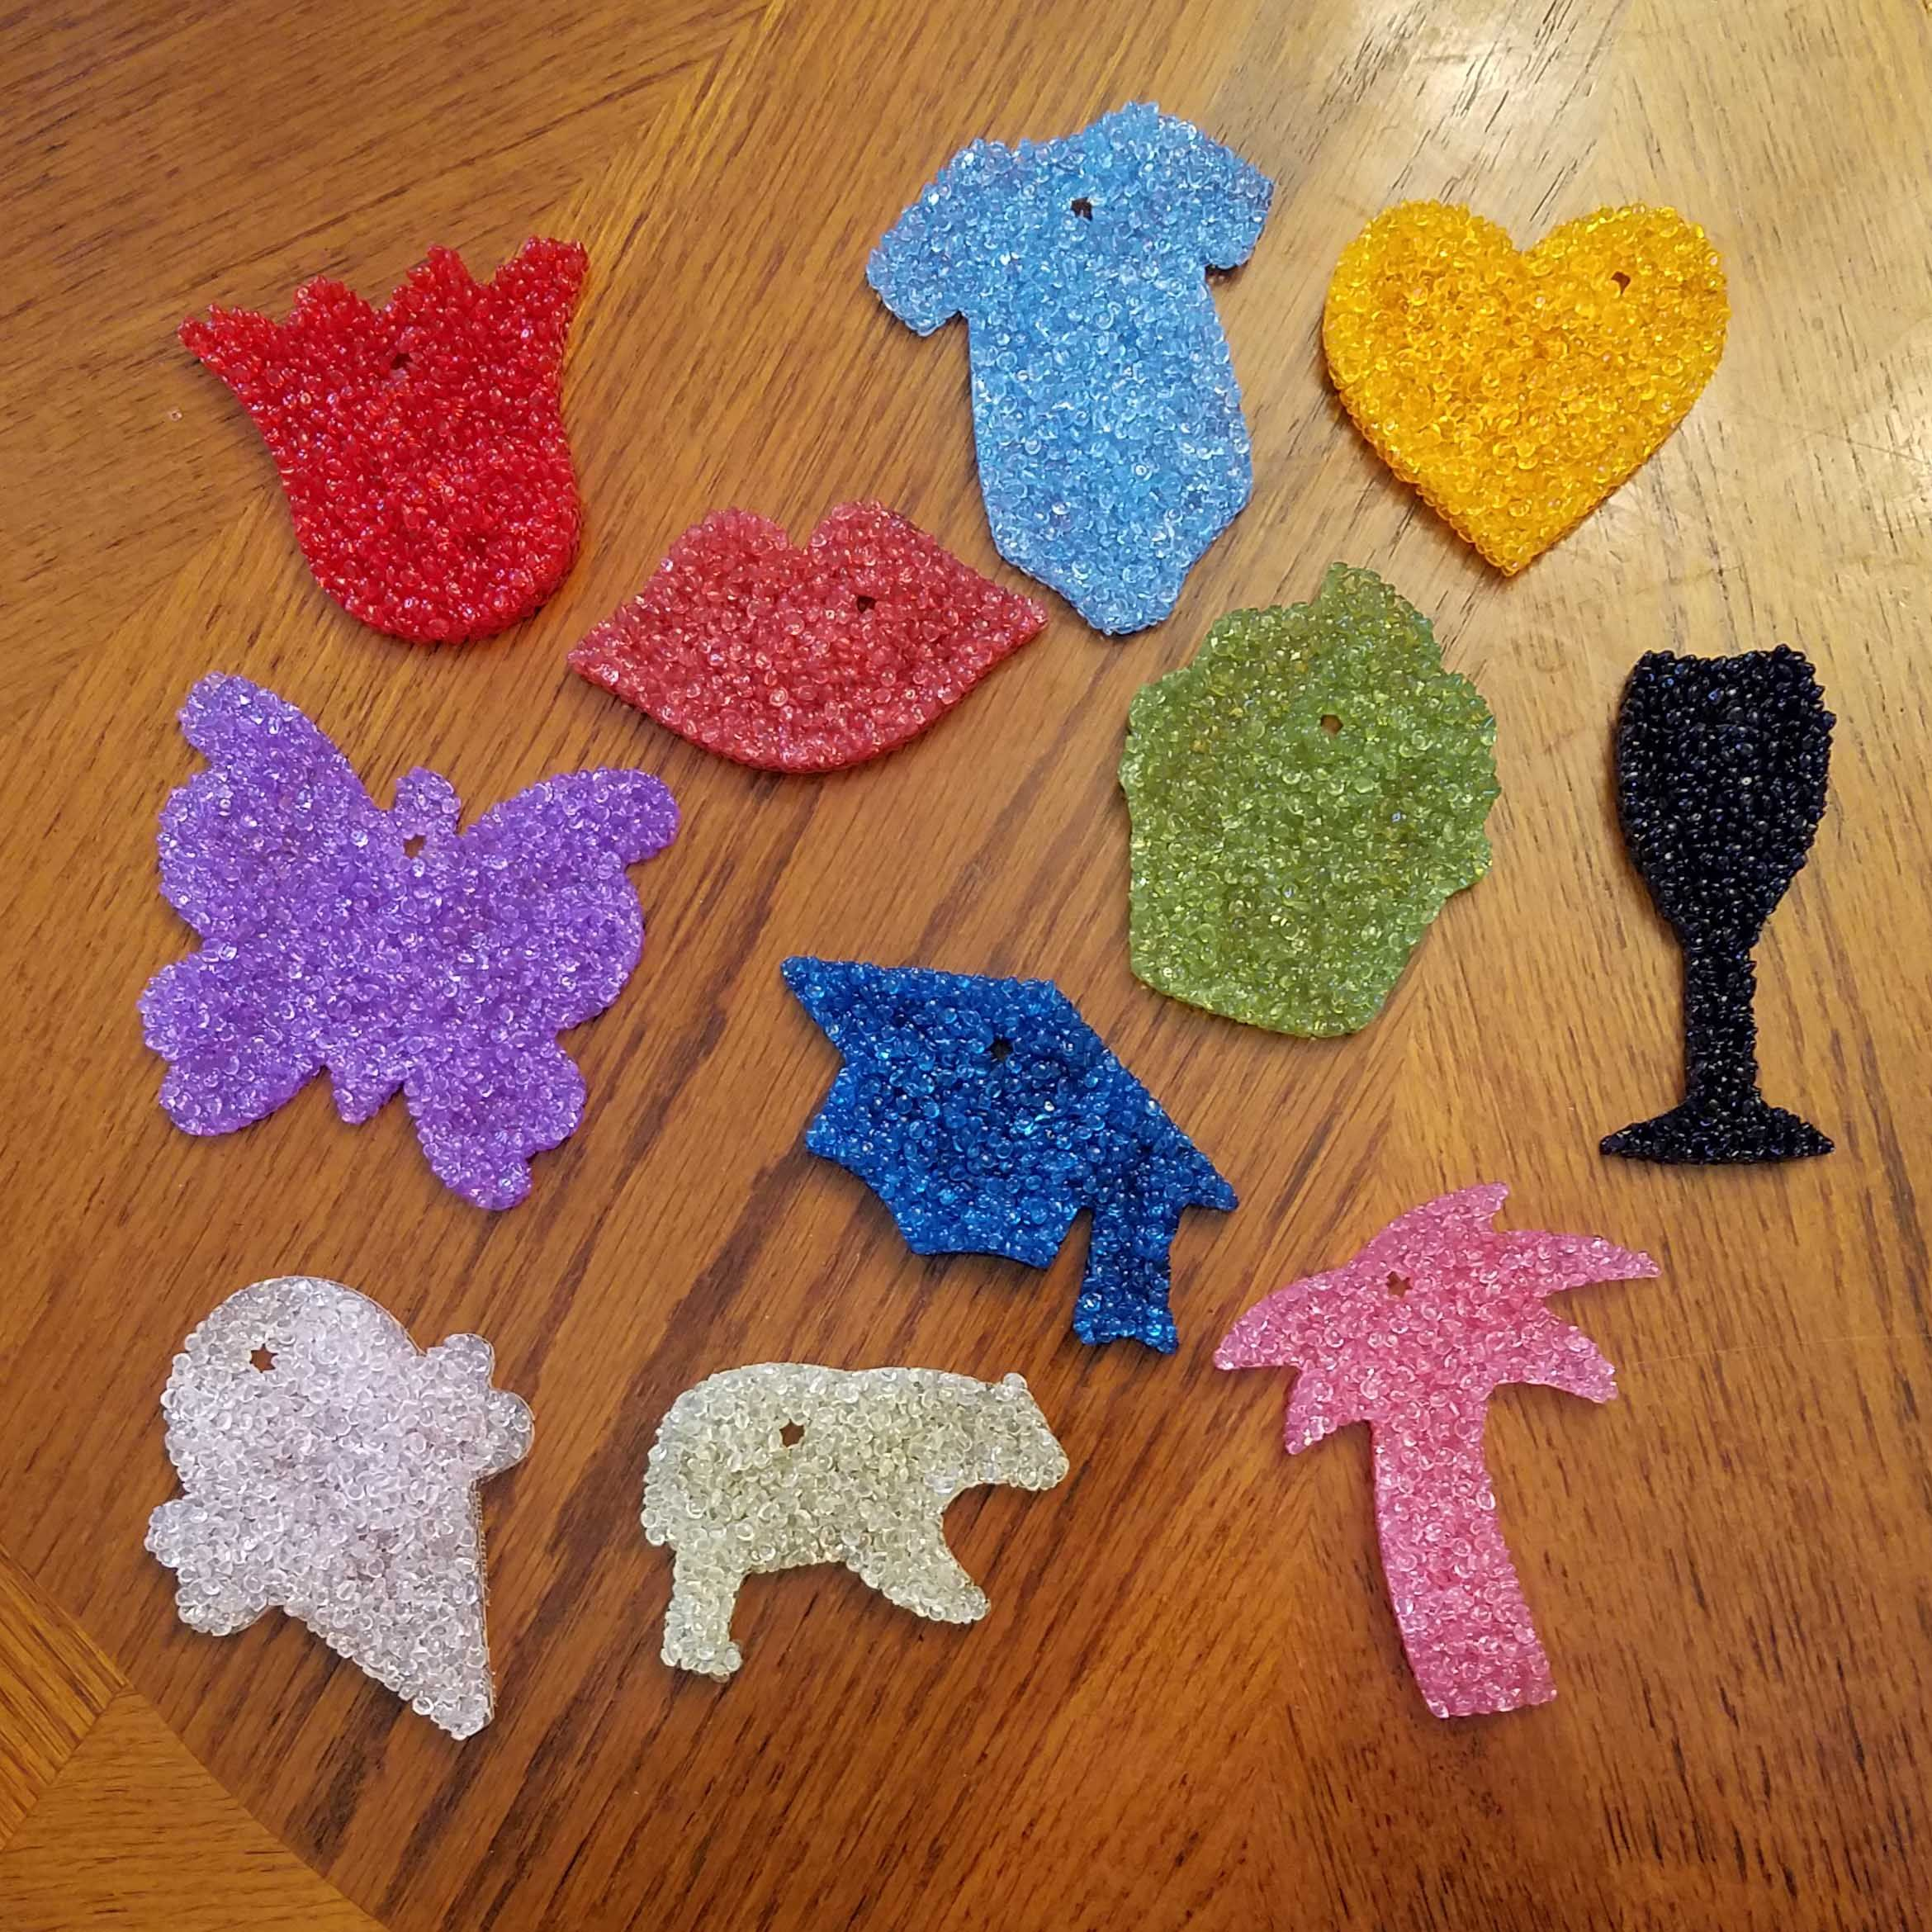 Air fresheners highly scented great for the car or